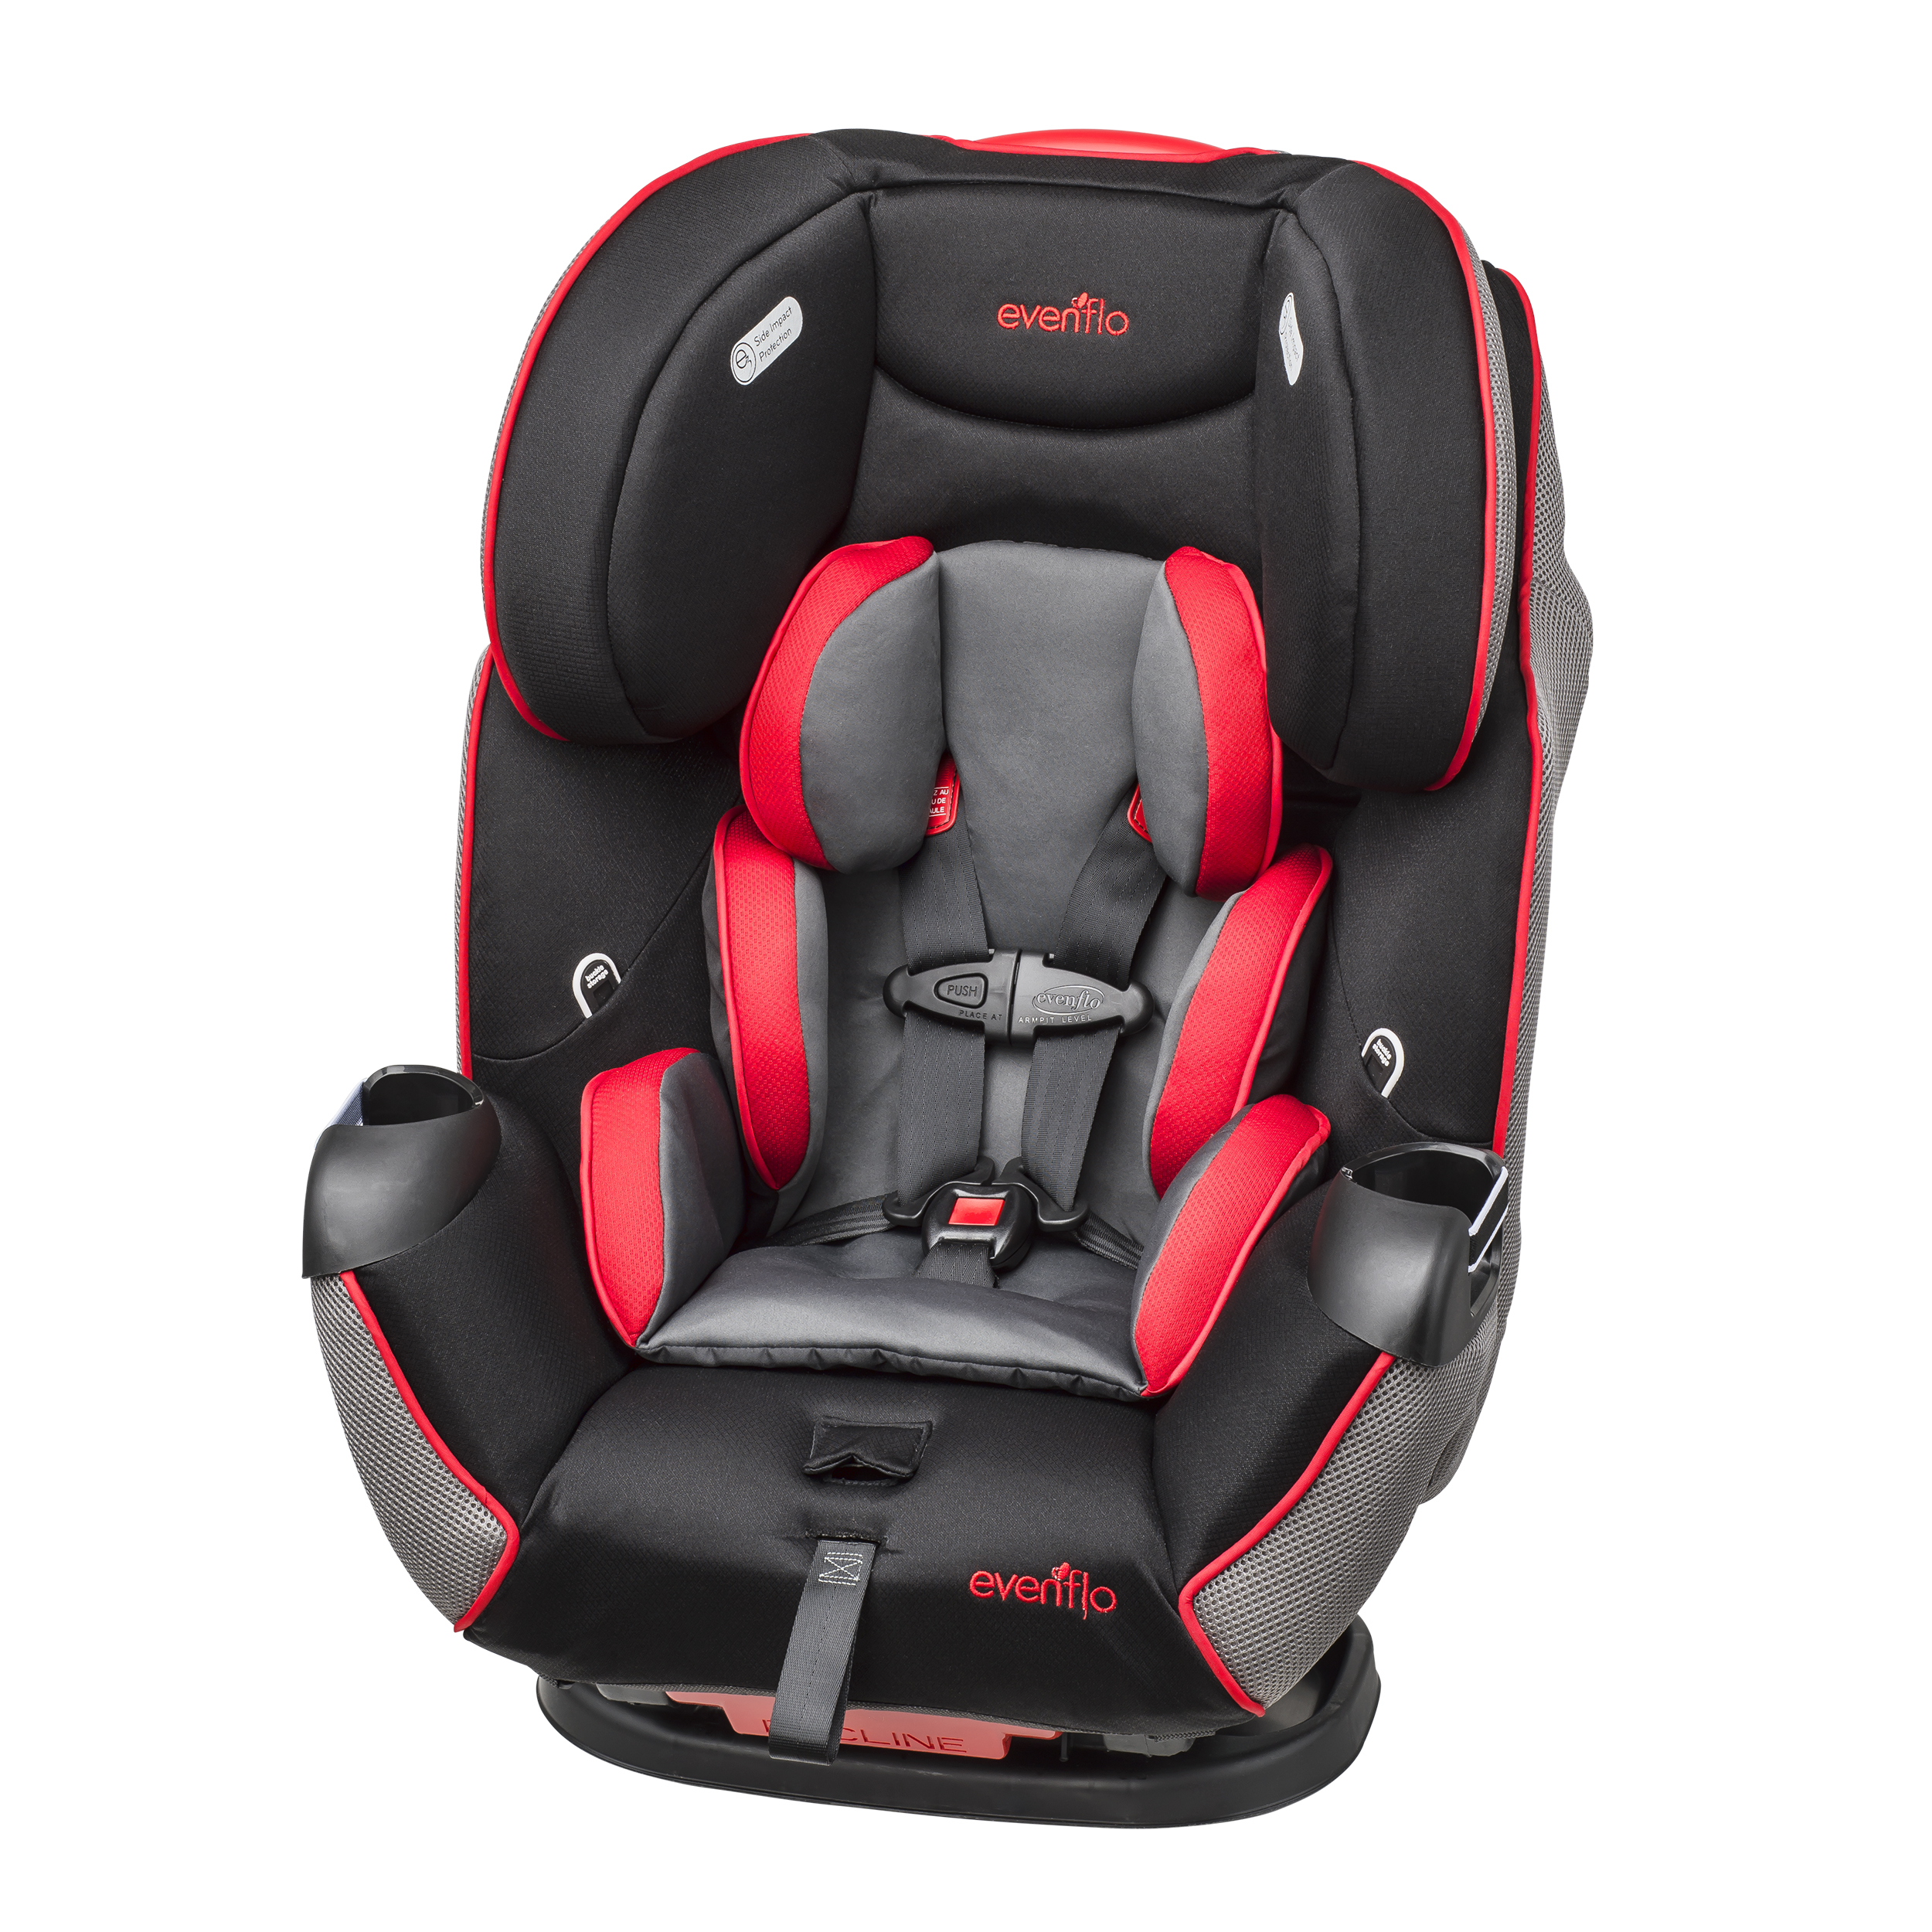 Evenflo Symphony LX All-in-One Convertible Car Seat, Choose Your Color